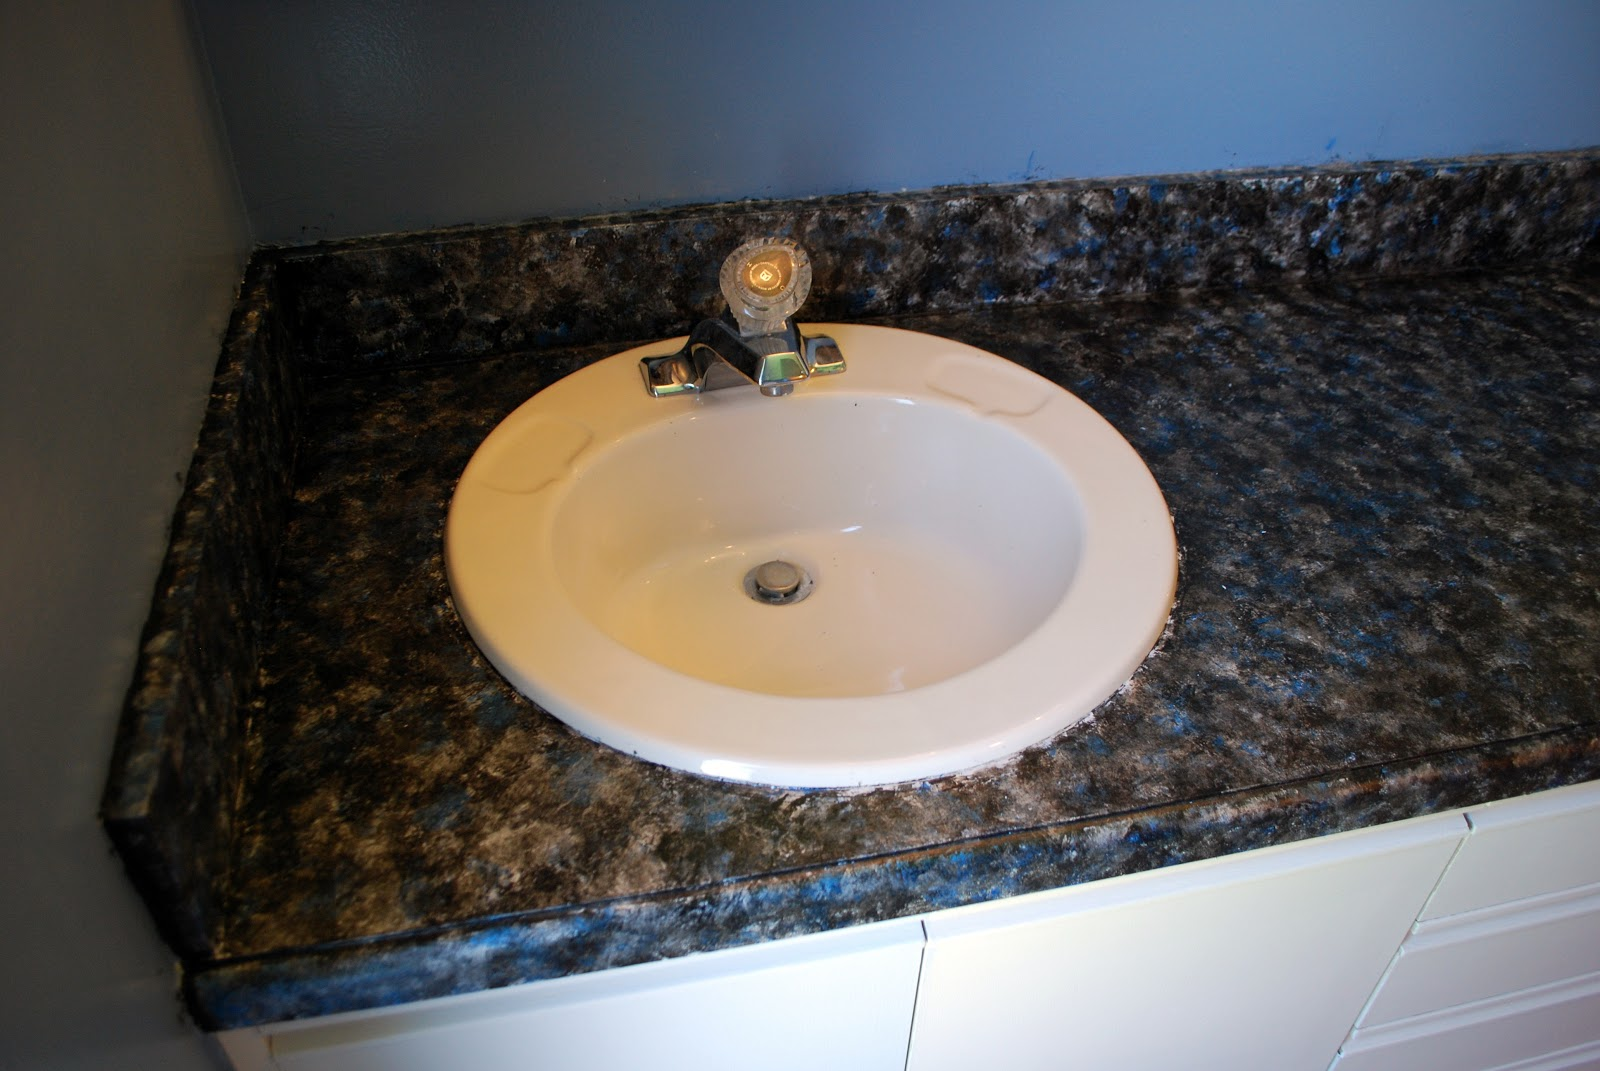 How To Get Countertop Paint Off Skin : ... Tutorial : How to Paint Bathroom Countertops to Look Like Faux Granite